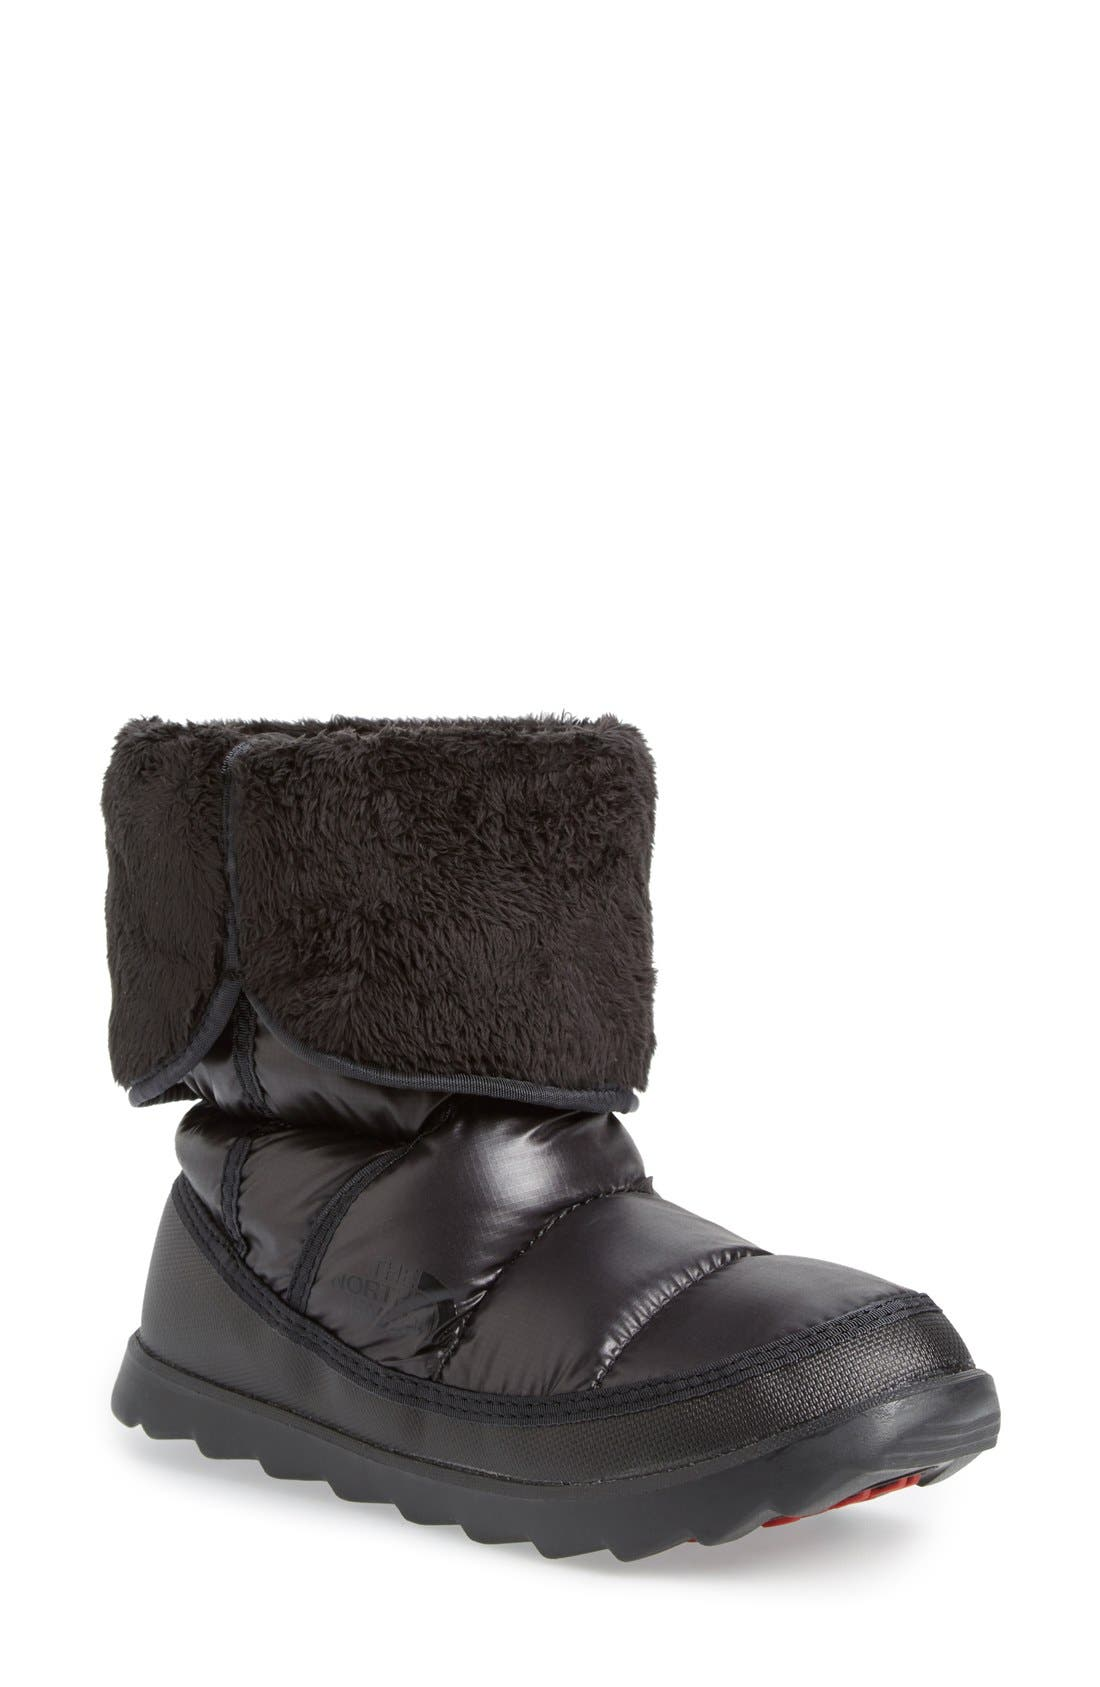 Main Image - The North Face 'Amore' Boot (Women)